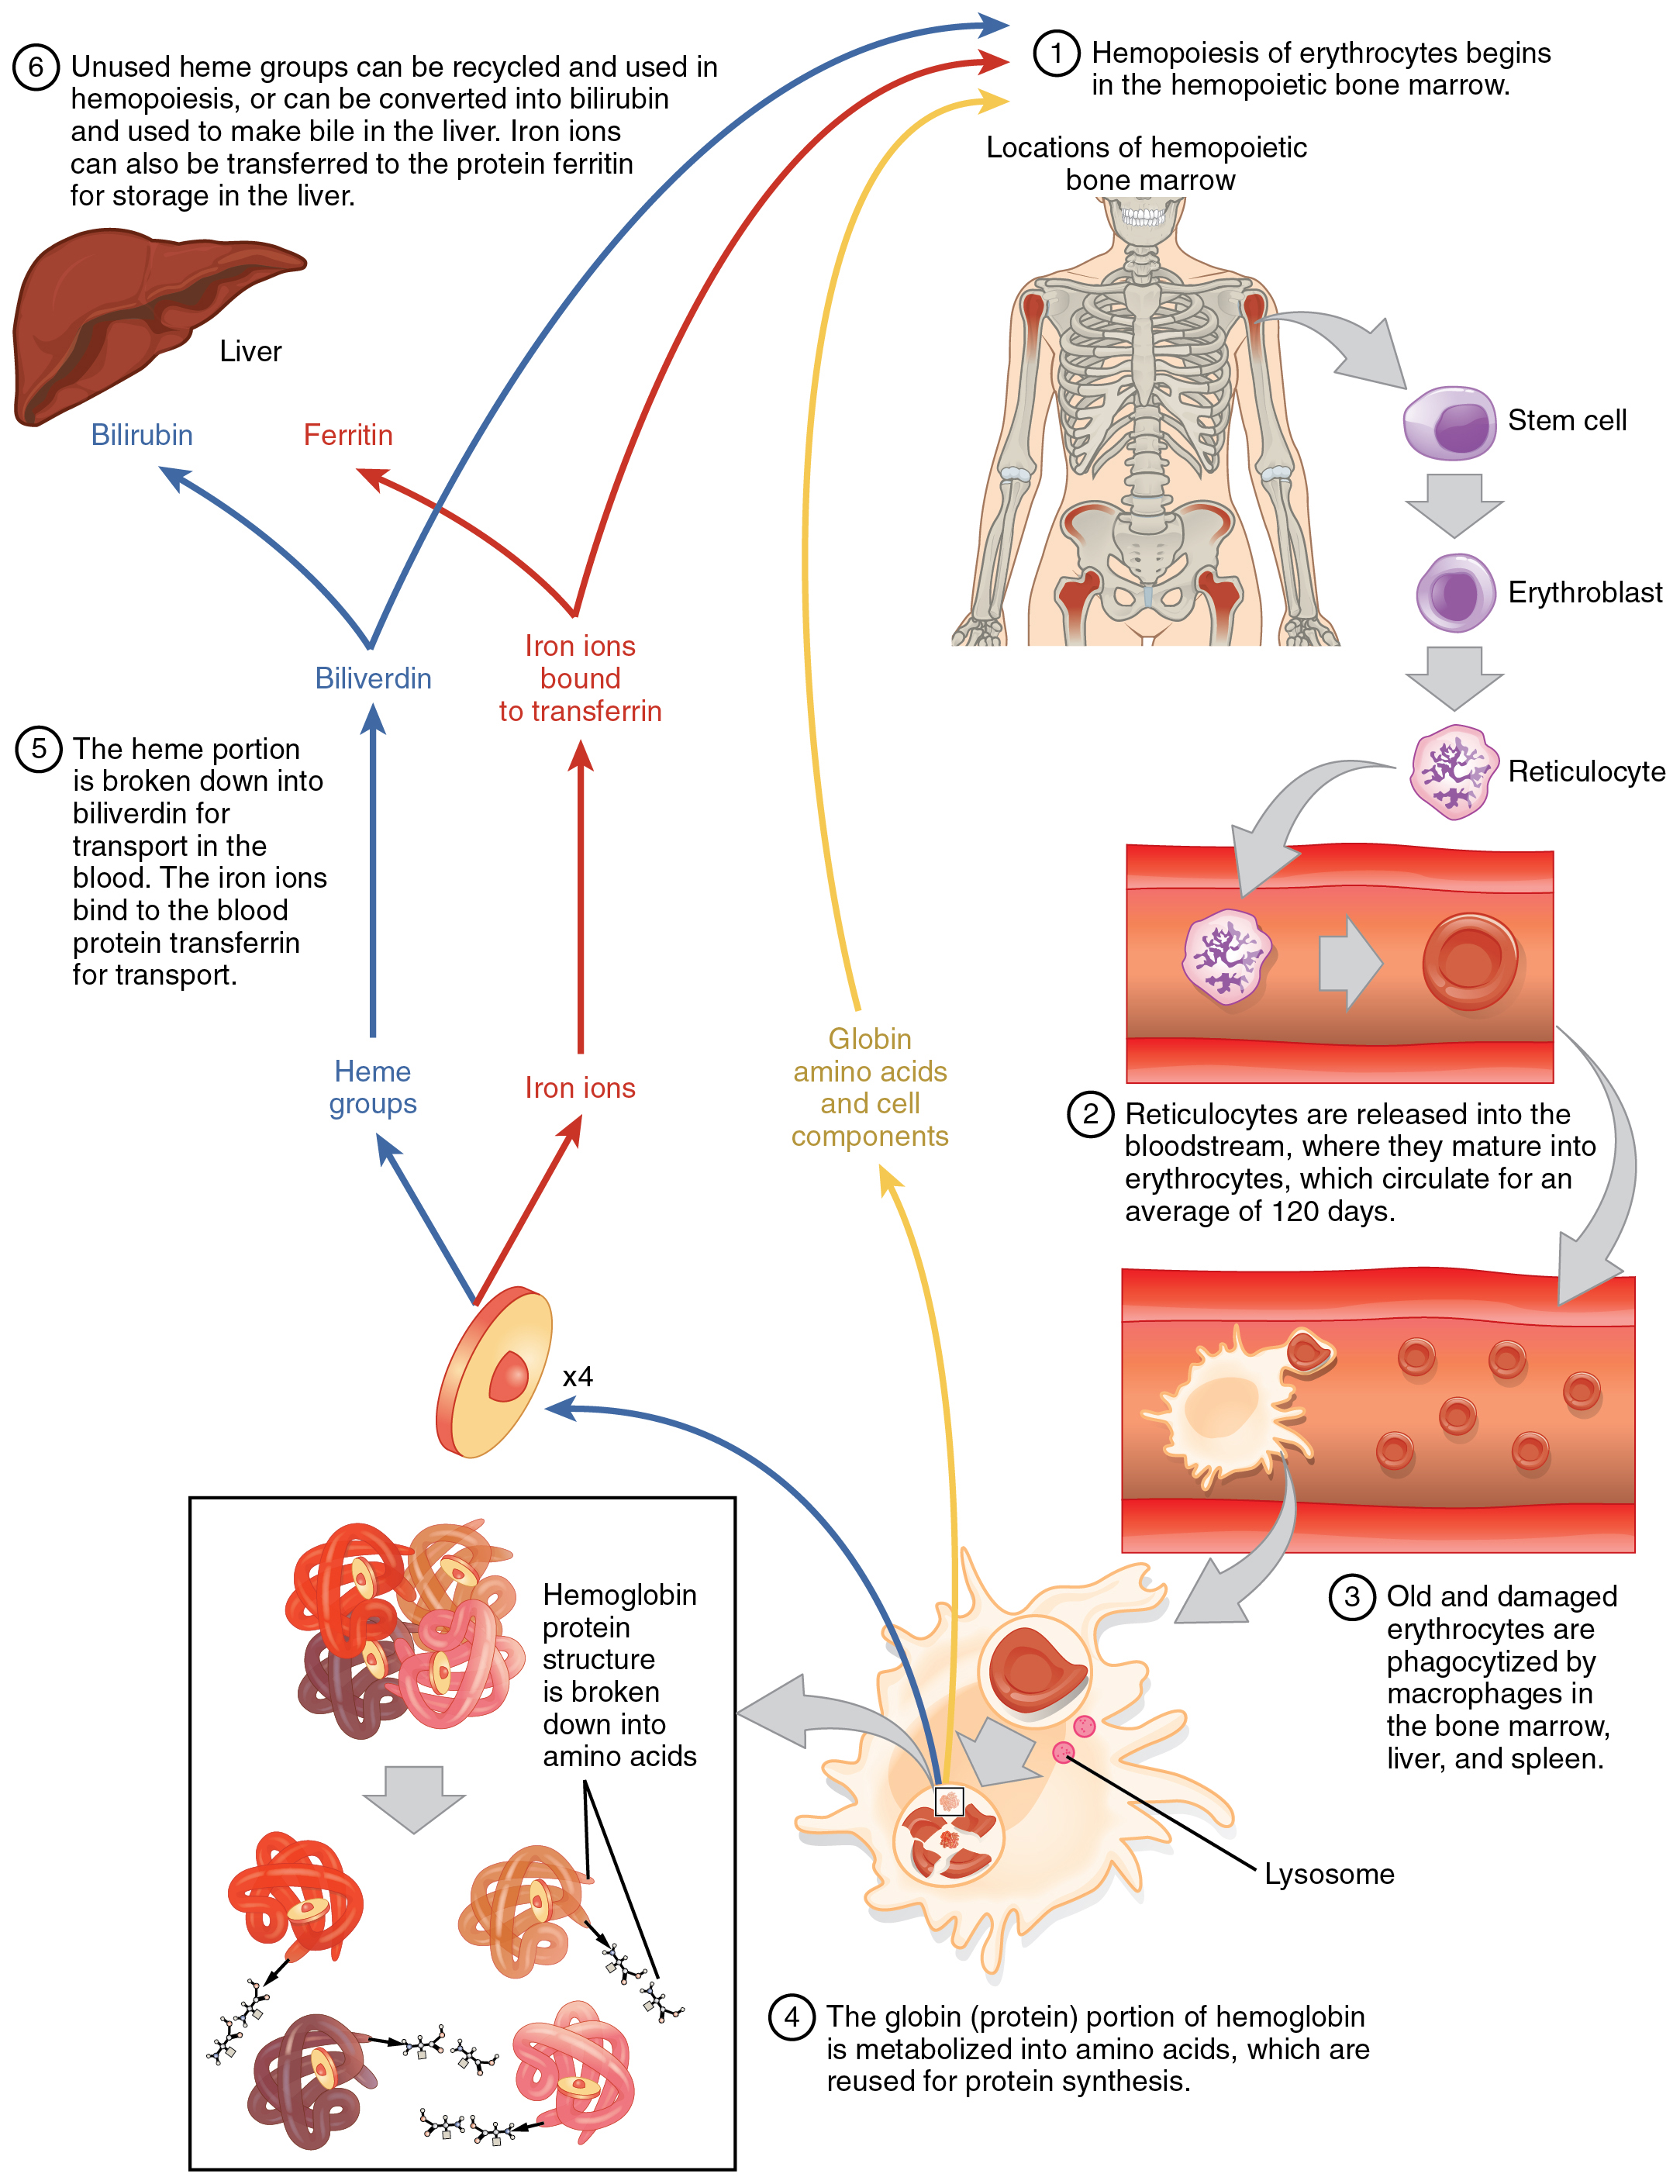 This flow chart shows the life cycle of a red blood cell. The first step is the hemopoeisis of erythrocytes in the bone marrow. Further steps in this diagram show the passage of erythrocytes through the blood stream, the breakdown of heme protein, and liver function.